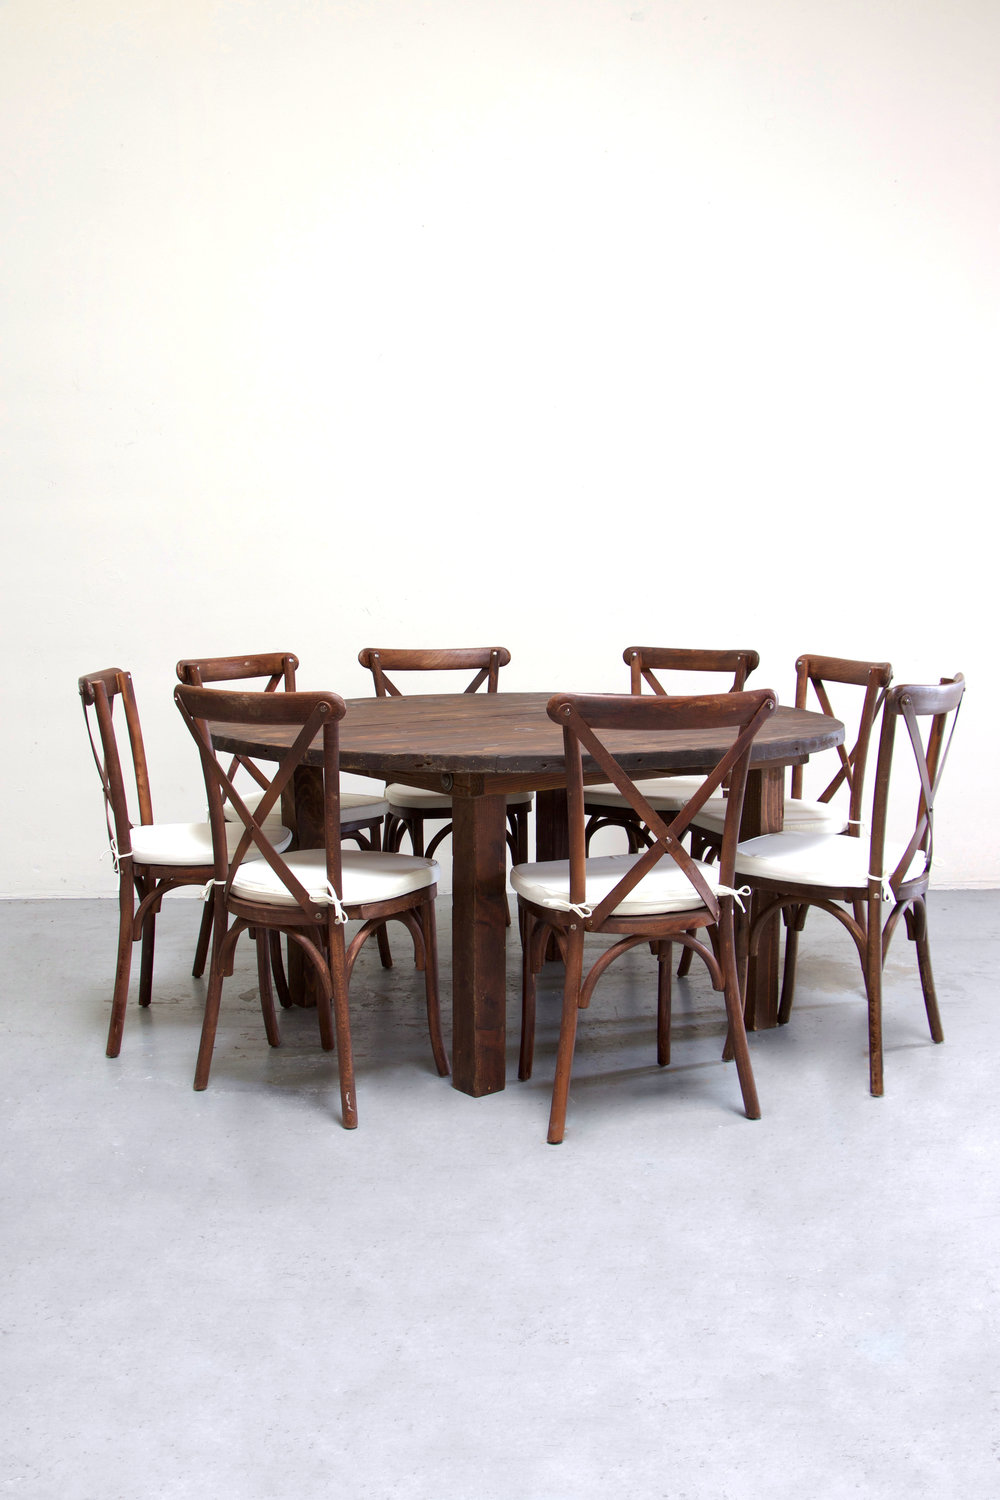 1 Round Mahogany Farm Table w/ 8 Cross-Back Chairs $145